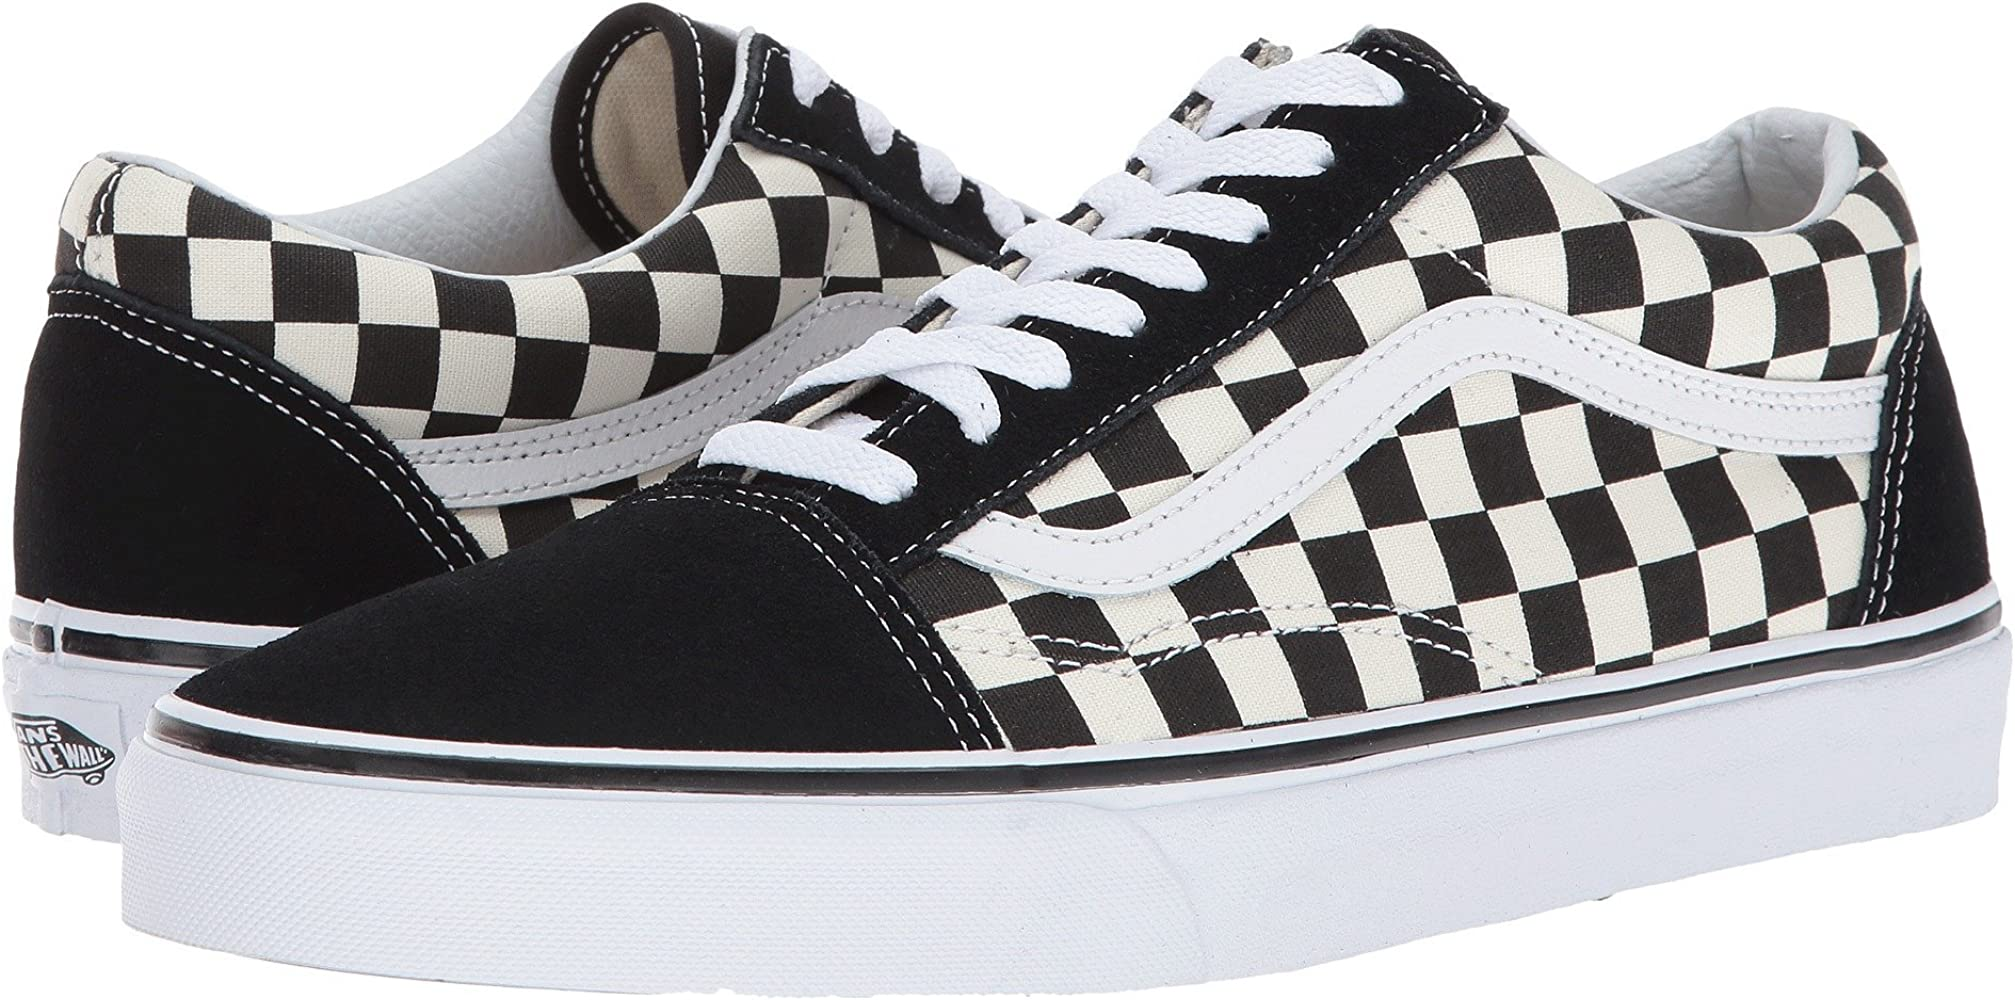 50% off on feet at hot-selling clearance Old Skool Primary Checker BLK/WHT Size 10.5 M US Women / 9 M US Men